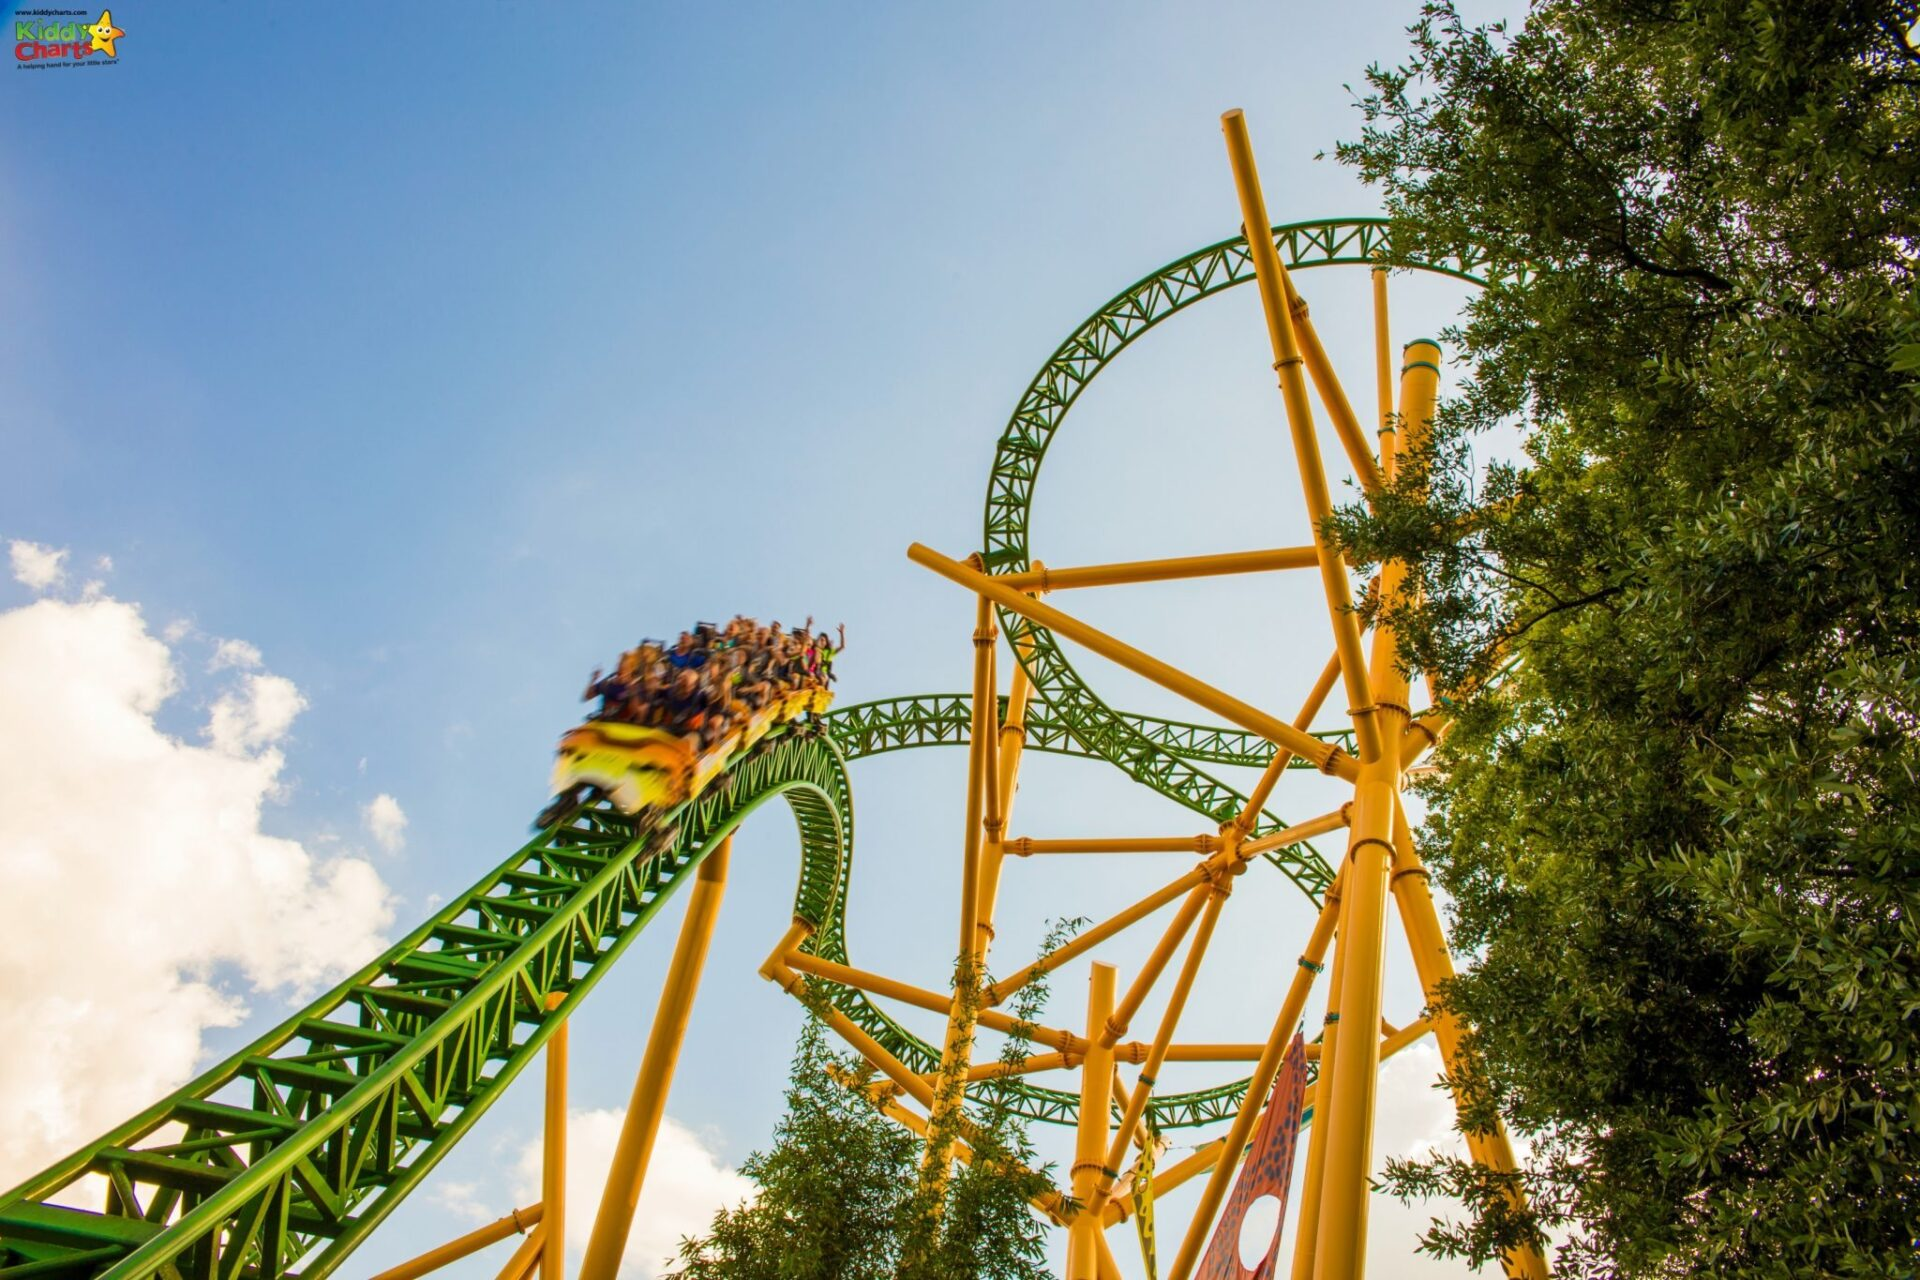 Busche Gardens Tampa's Cheetah Hunt is 3 minutes long - its a long time for you to scream, right!?!? ;-)